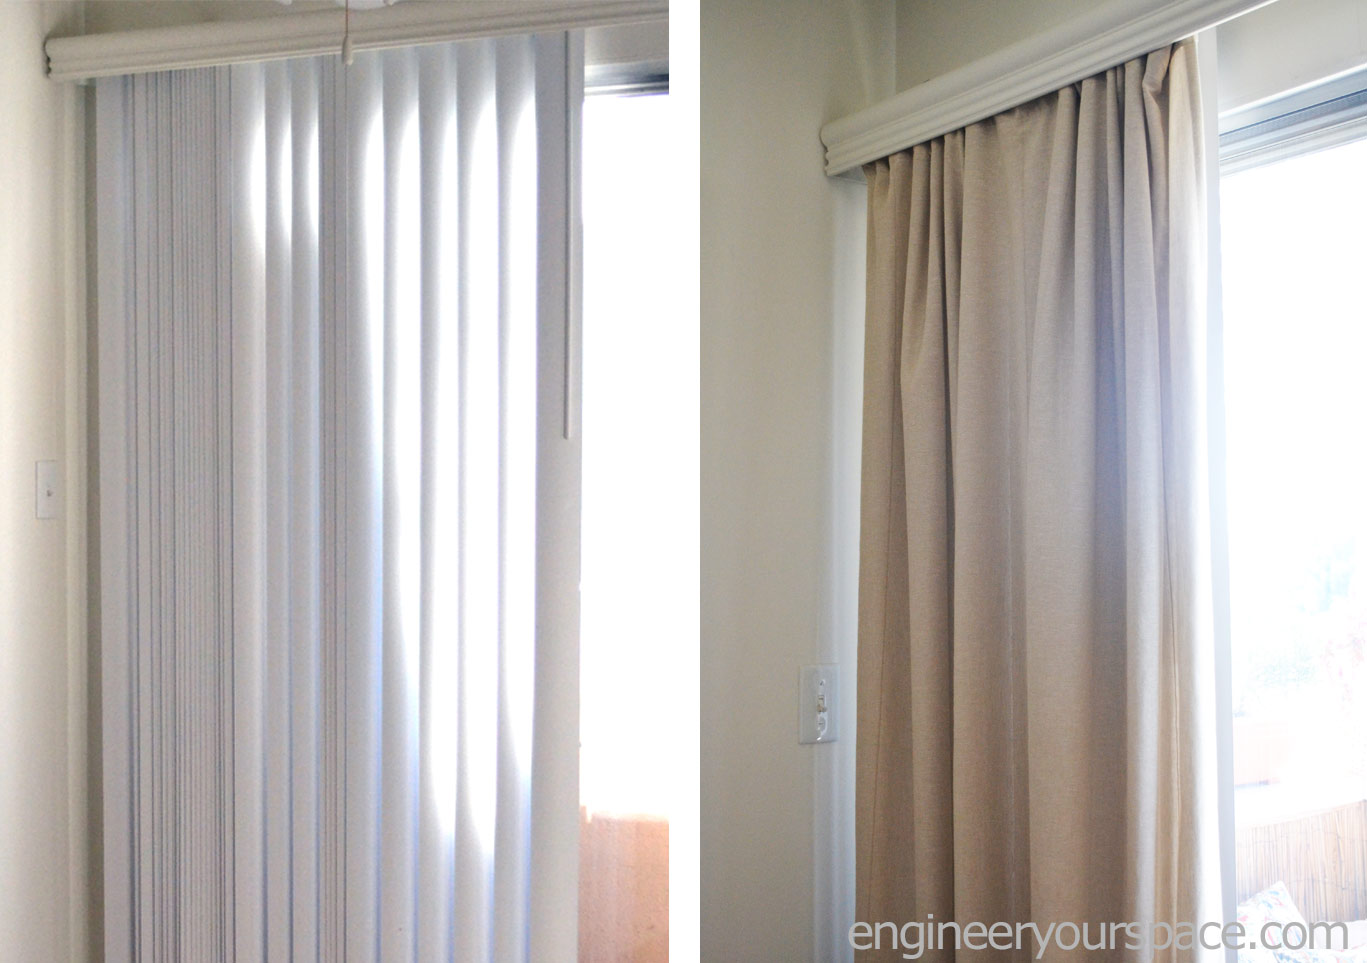 Extra Long Shower Curtains For Walk In Showers Curtain Rod Over Vertical Blinds